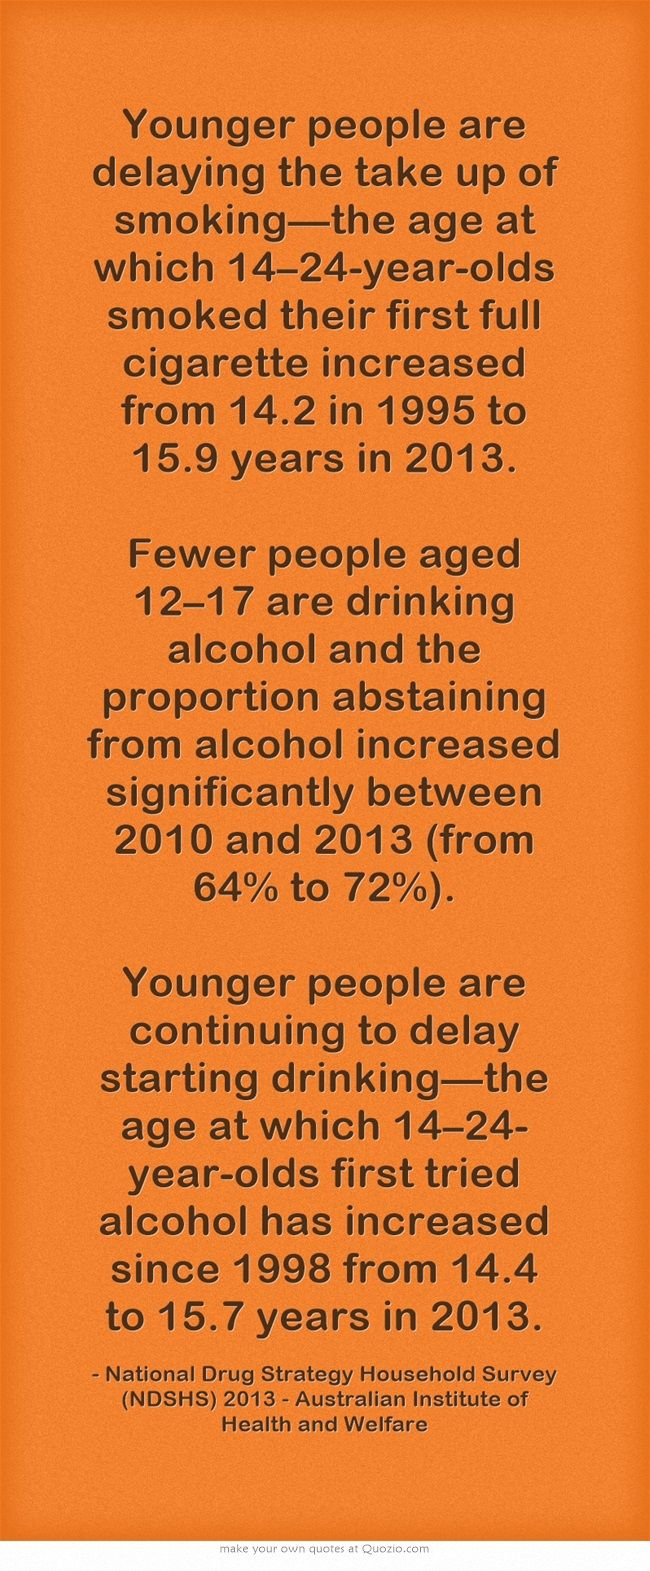 Key findings about young people and alcohol and tobacco use from the 2013 National Drug Strategy Household Survey. Younger people are delaying the take up of smoking—the age at which 14–24-year-olds smoked their first full cigarette increased from 14.2 in 1995 to 15.9 years in 2013. Fewer people aged 12–17 are drinking alcohol and the proportion abstaining from alcohol increased significantly between 2010 and 2013 (from 64% to 72%).